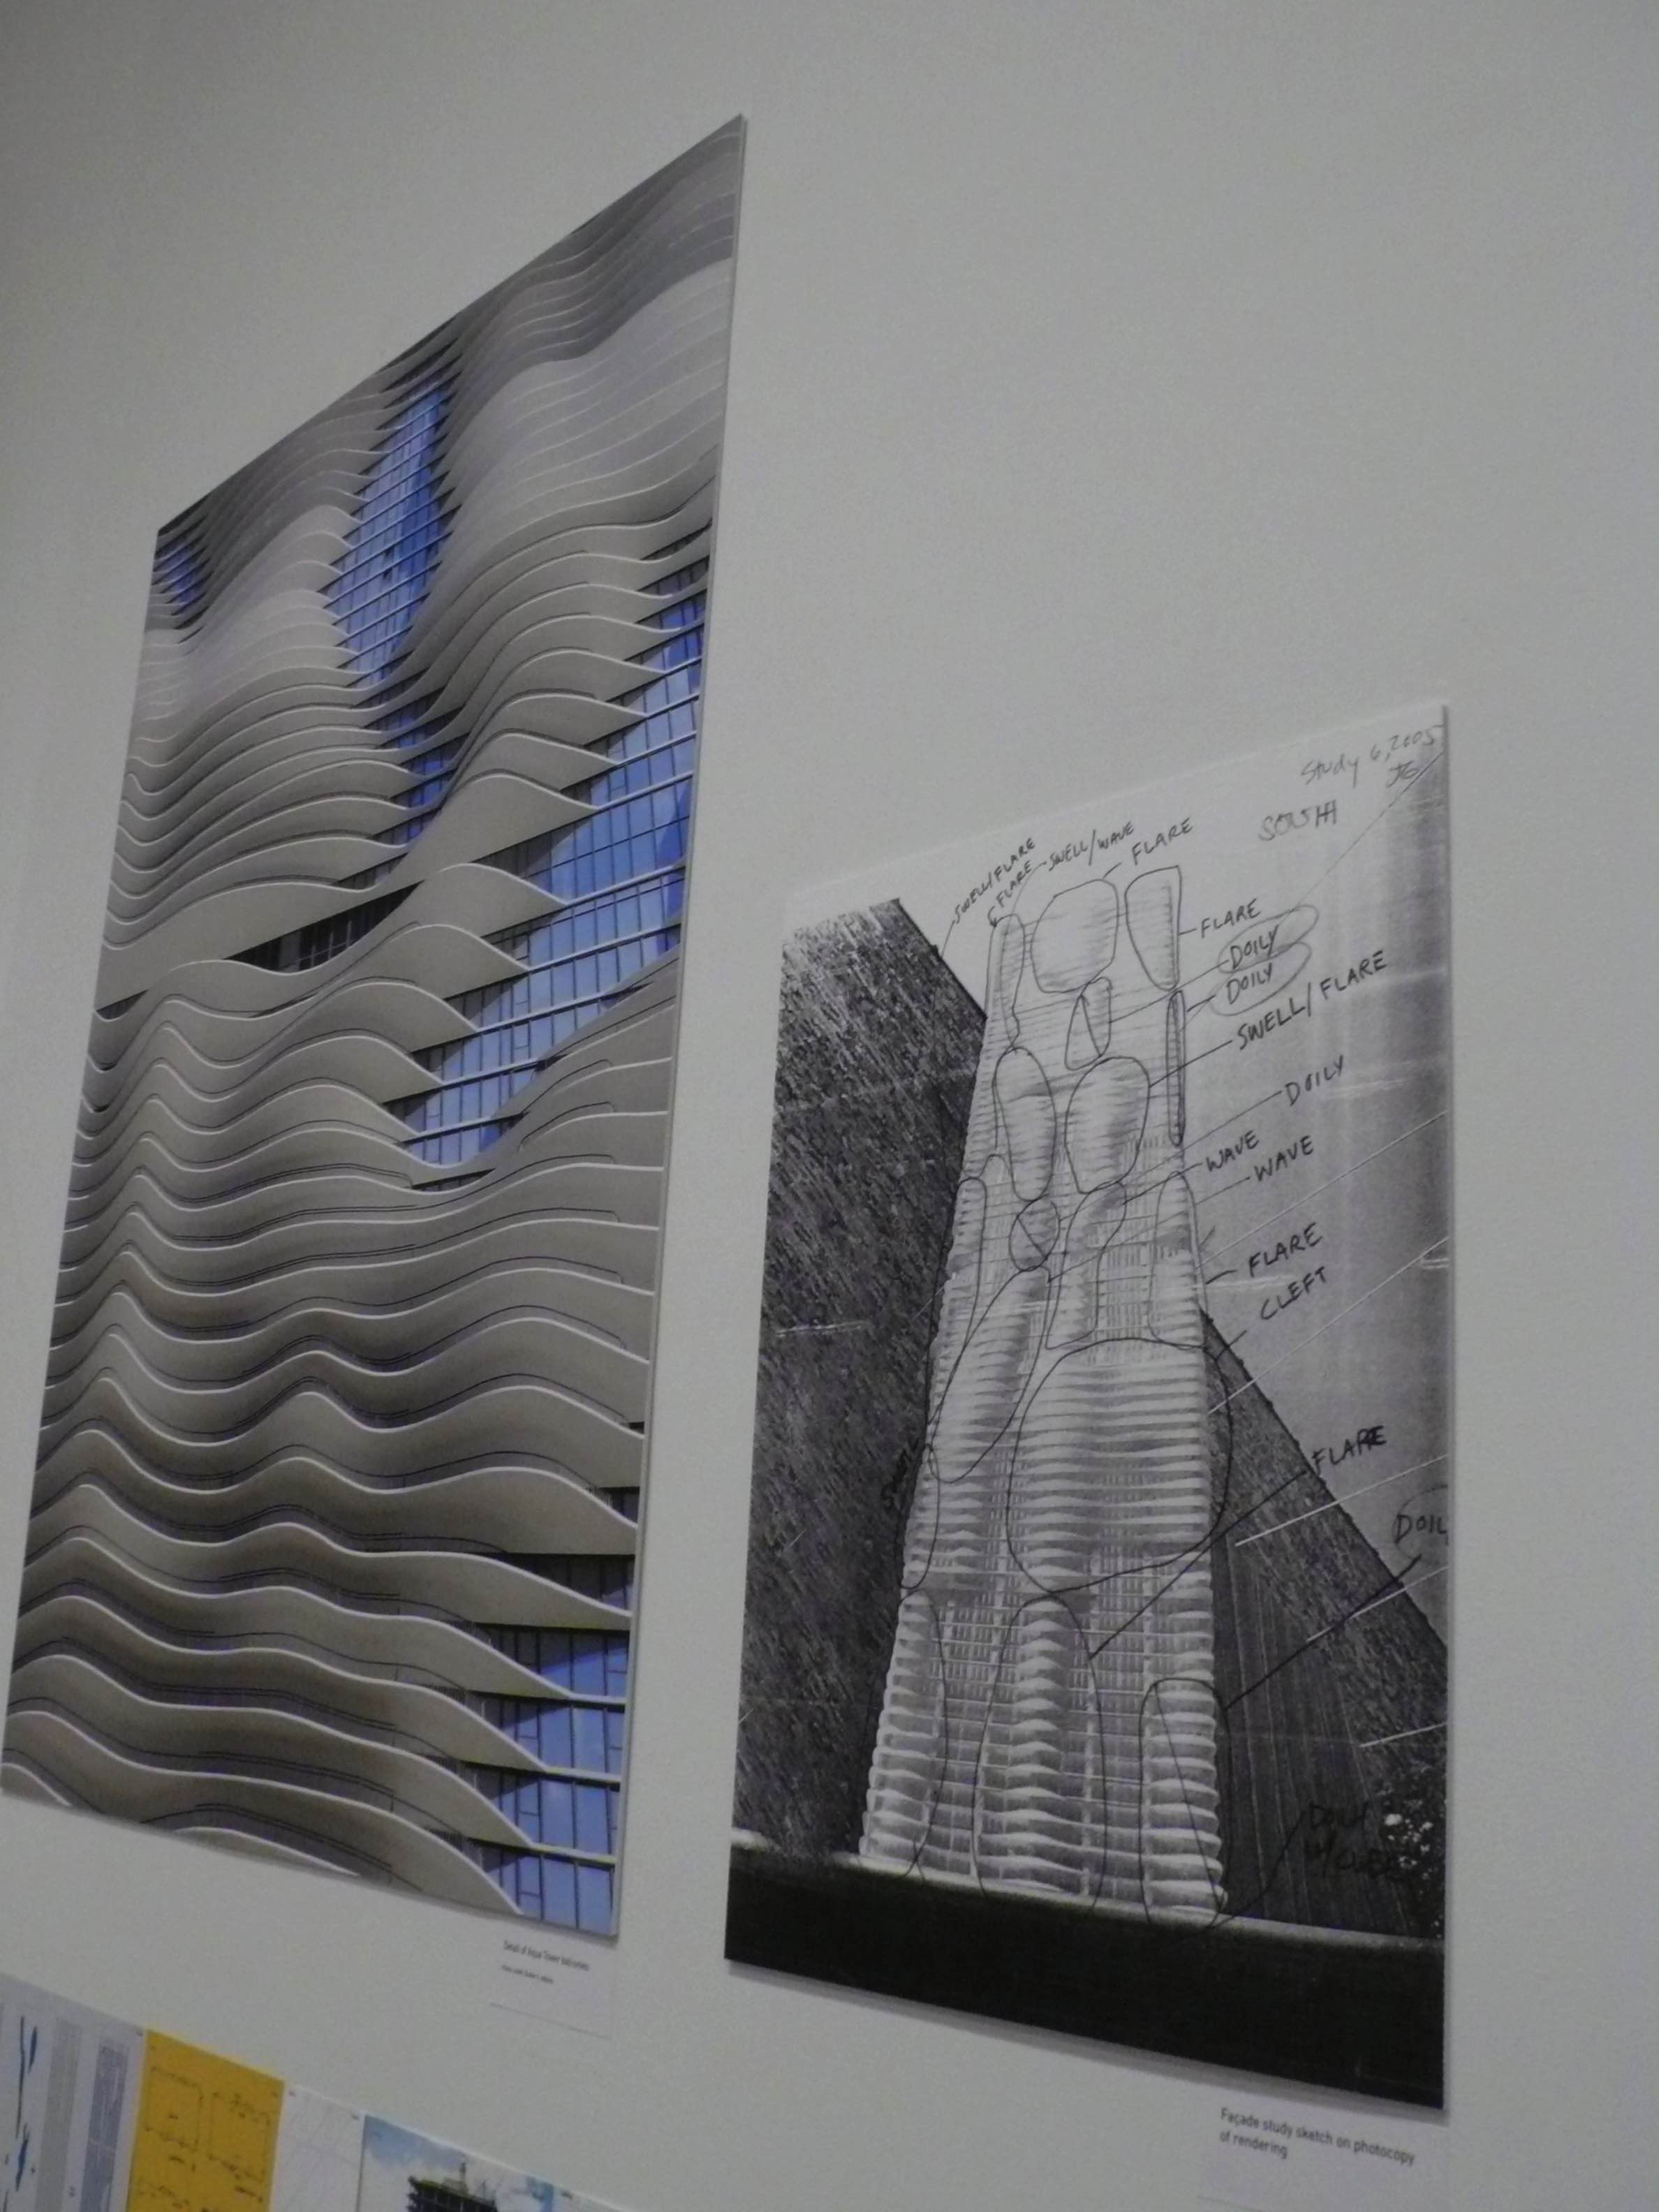 The Studio Gang-designed Aqua Tower is featured in the Art Institute exhibit celebrating the Chicago-based firm.